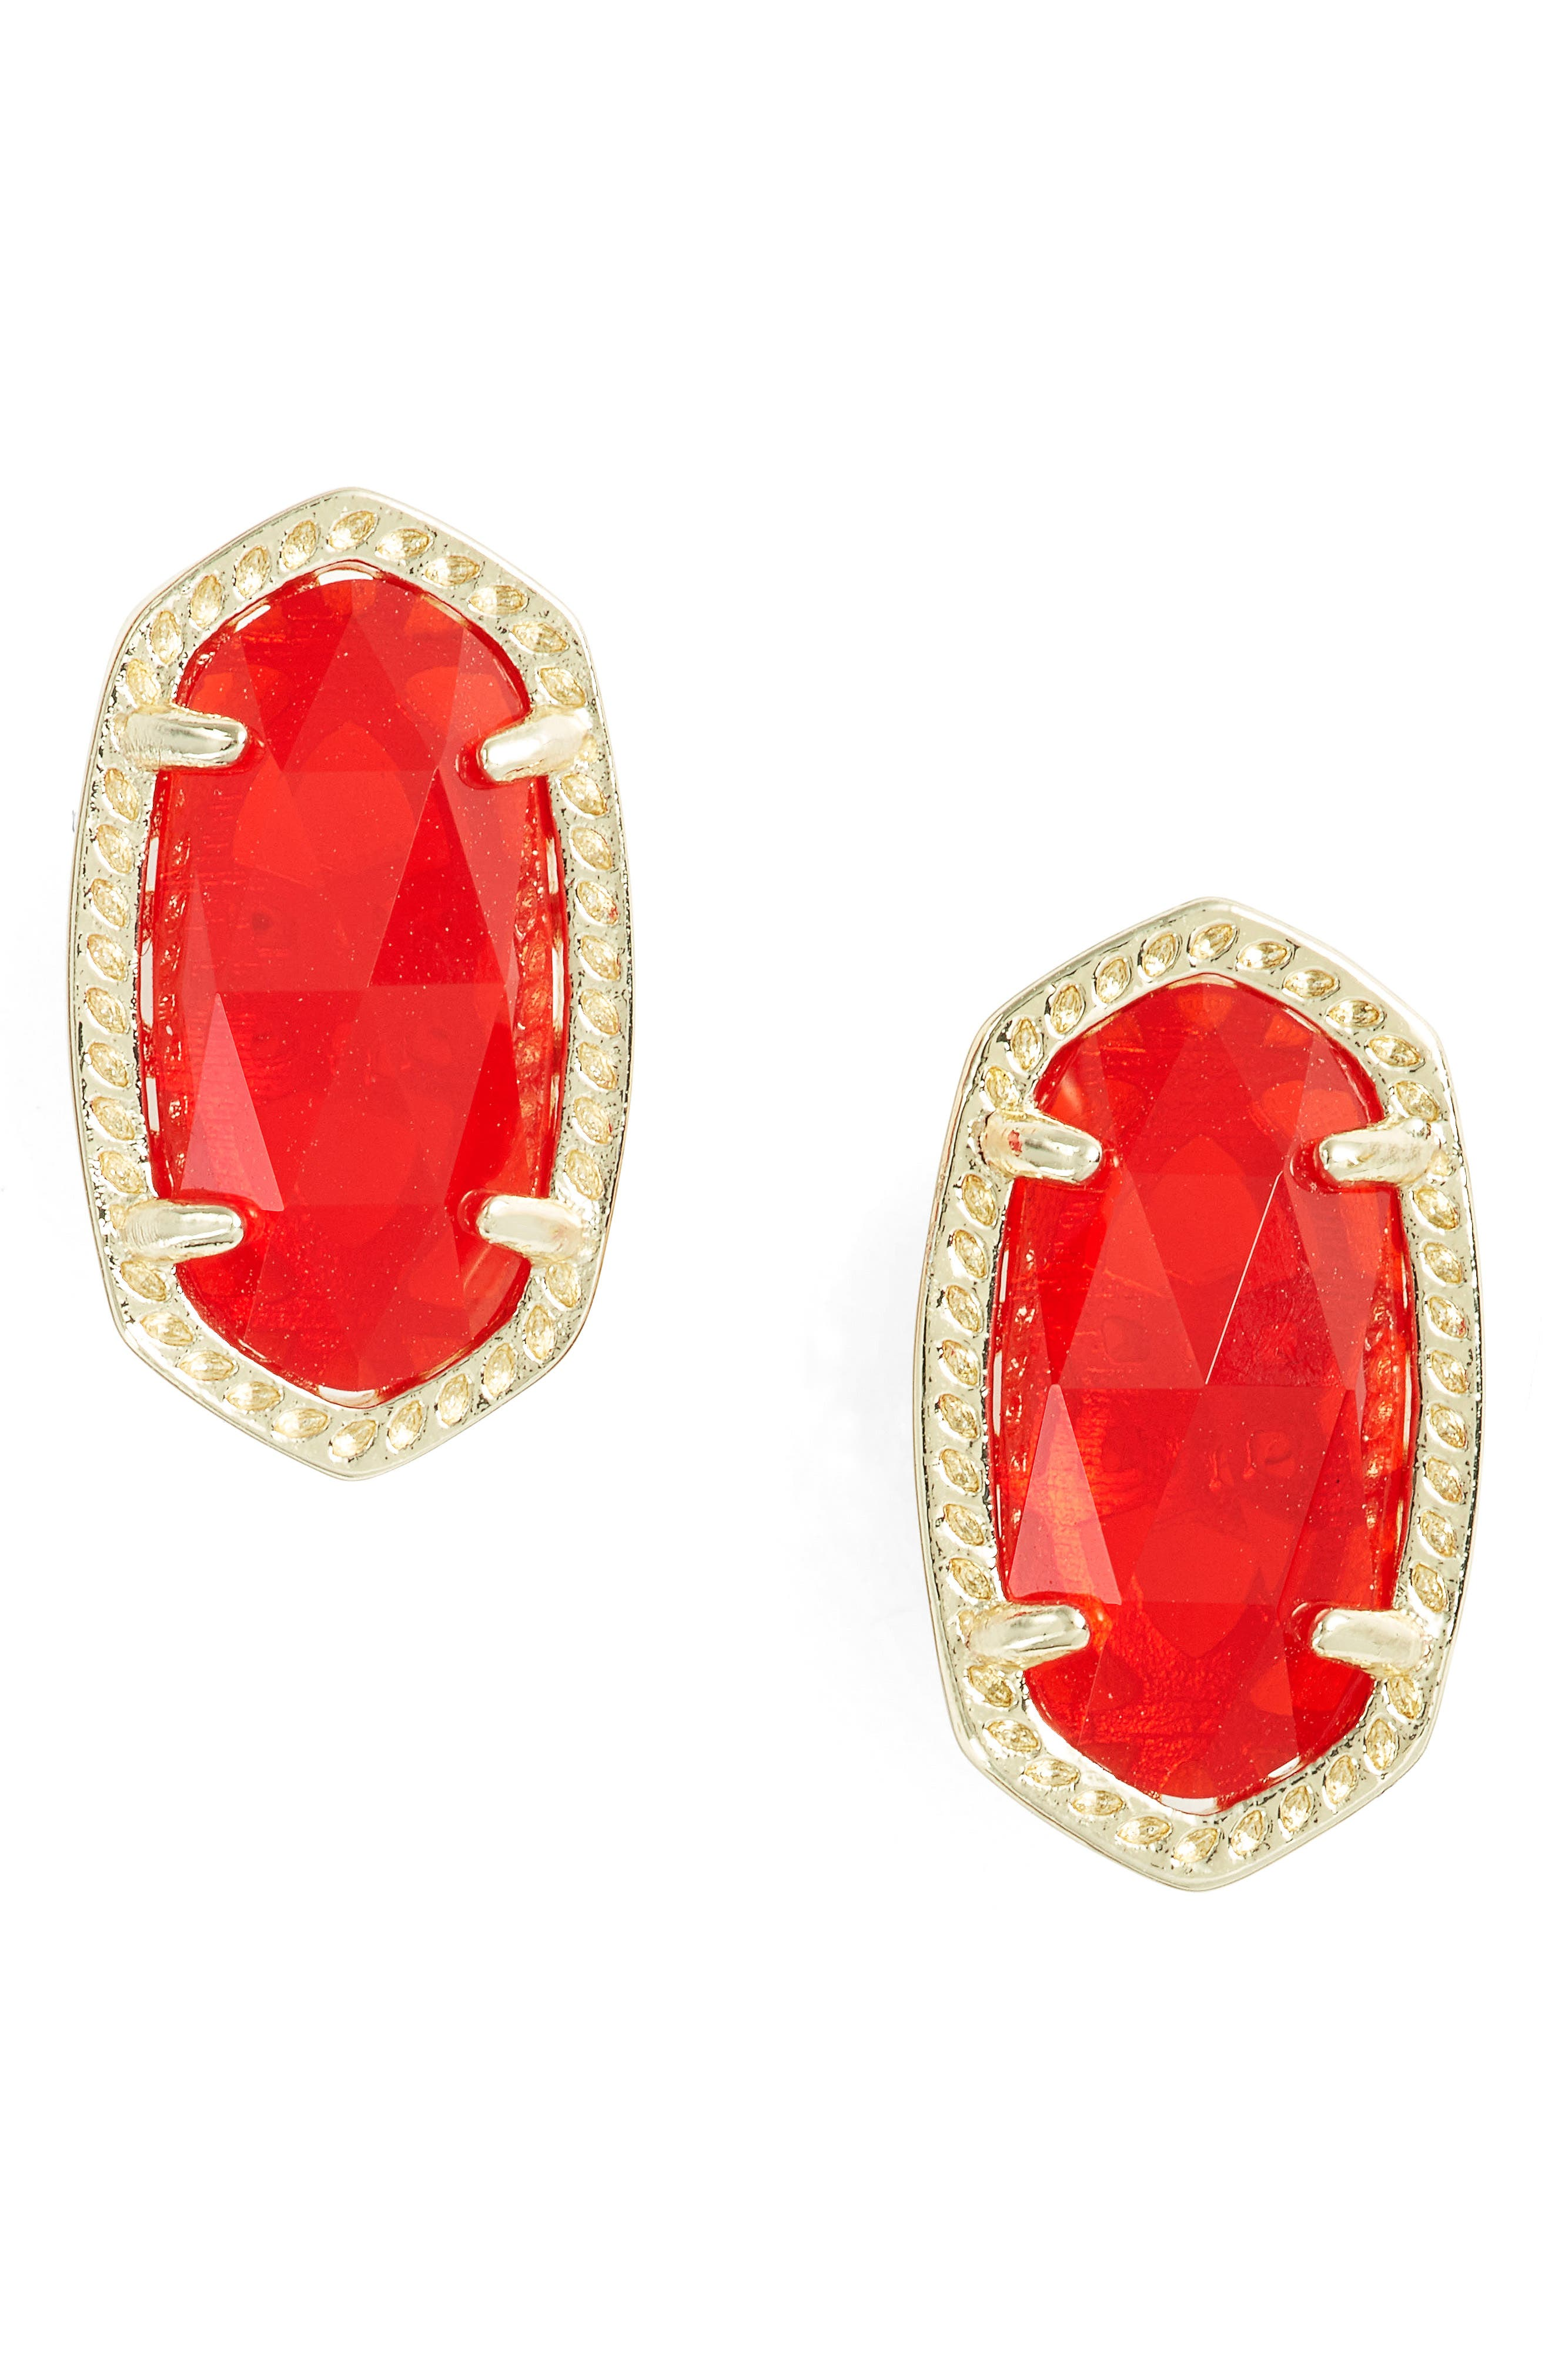 Kendra Scott Ellie Birthstone Stud Earrings